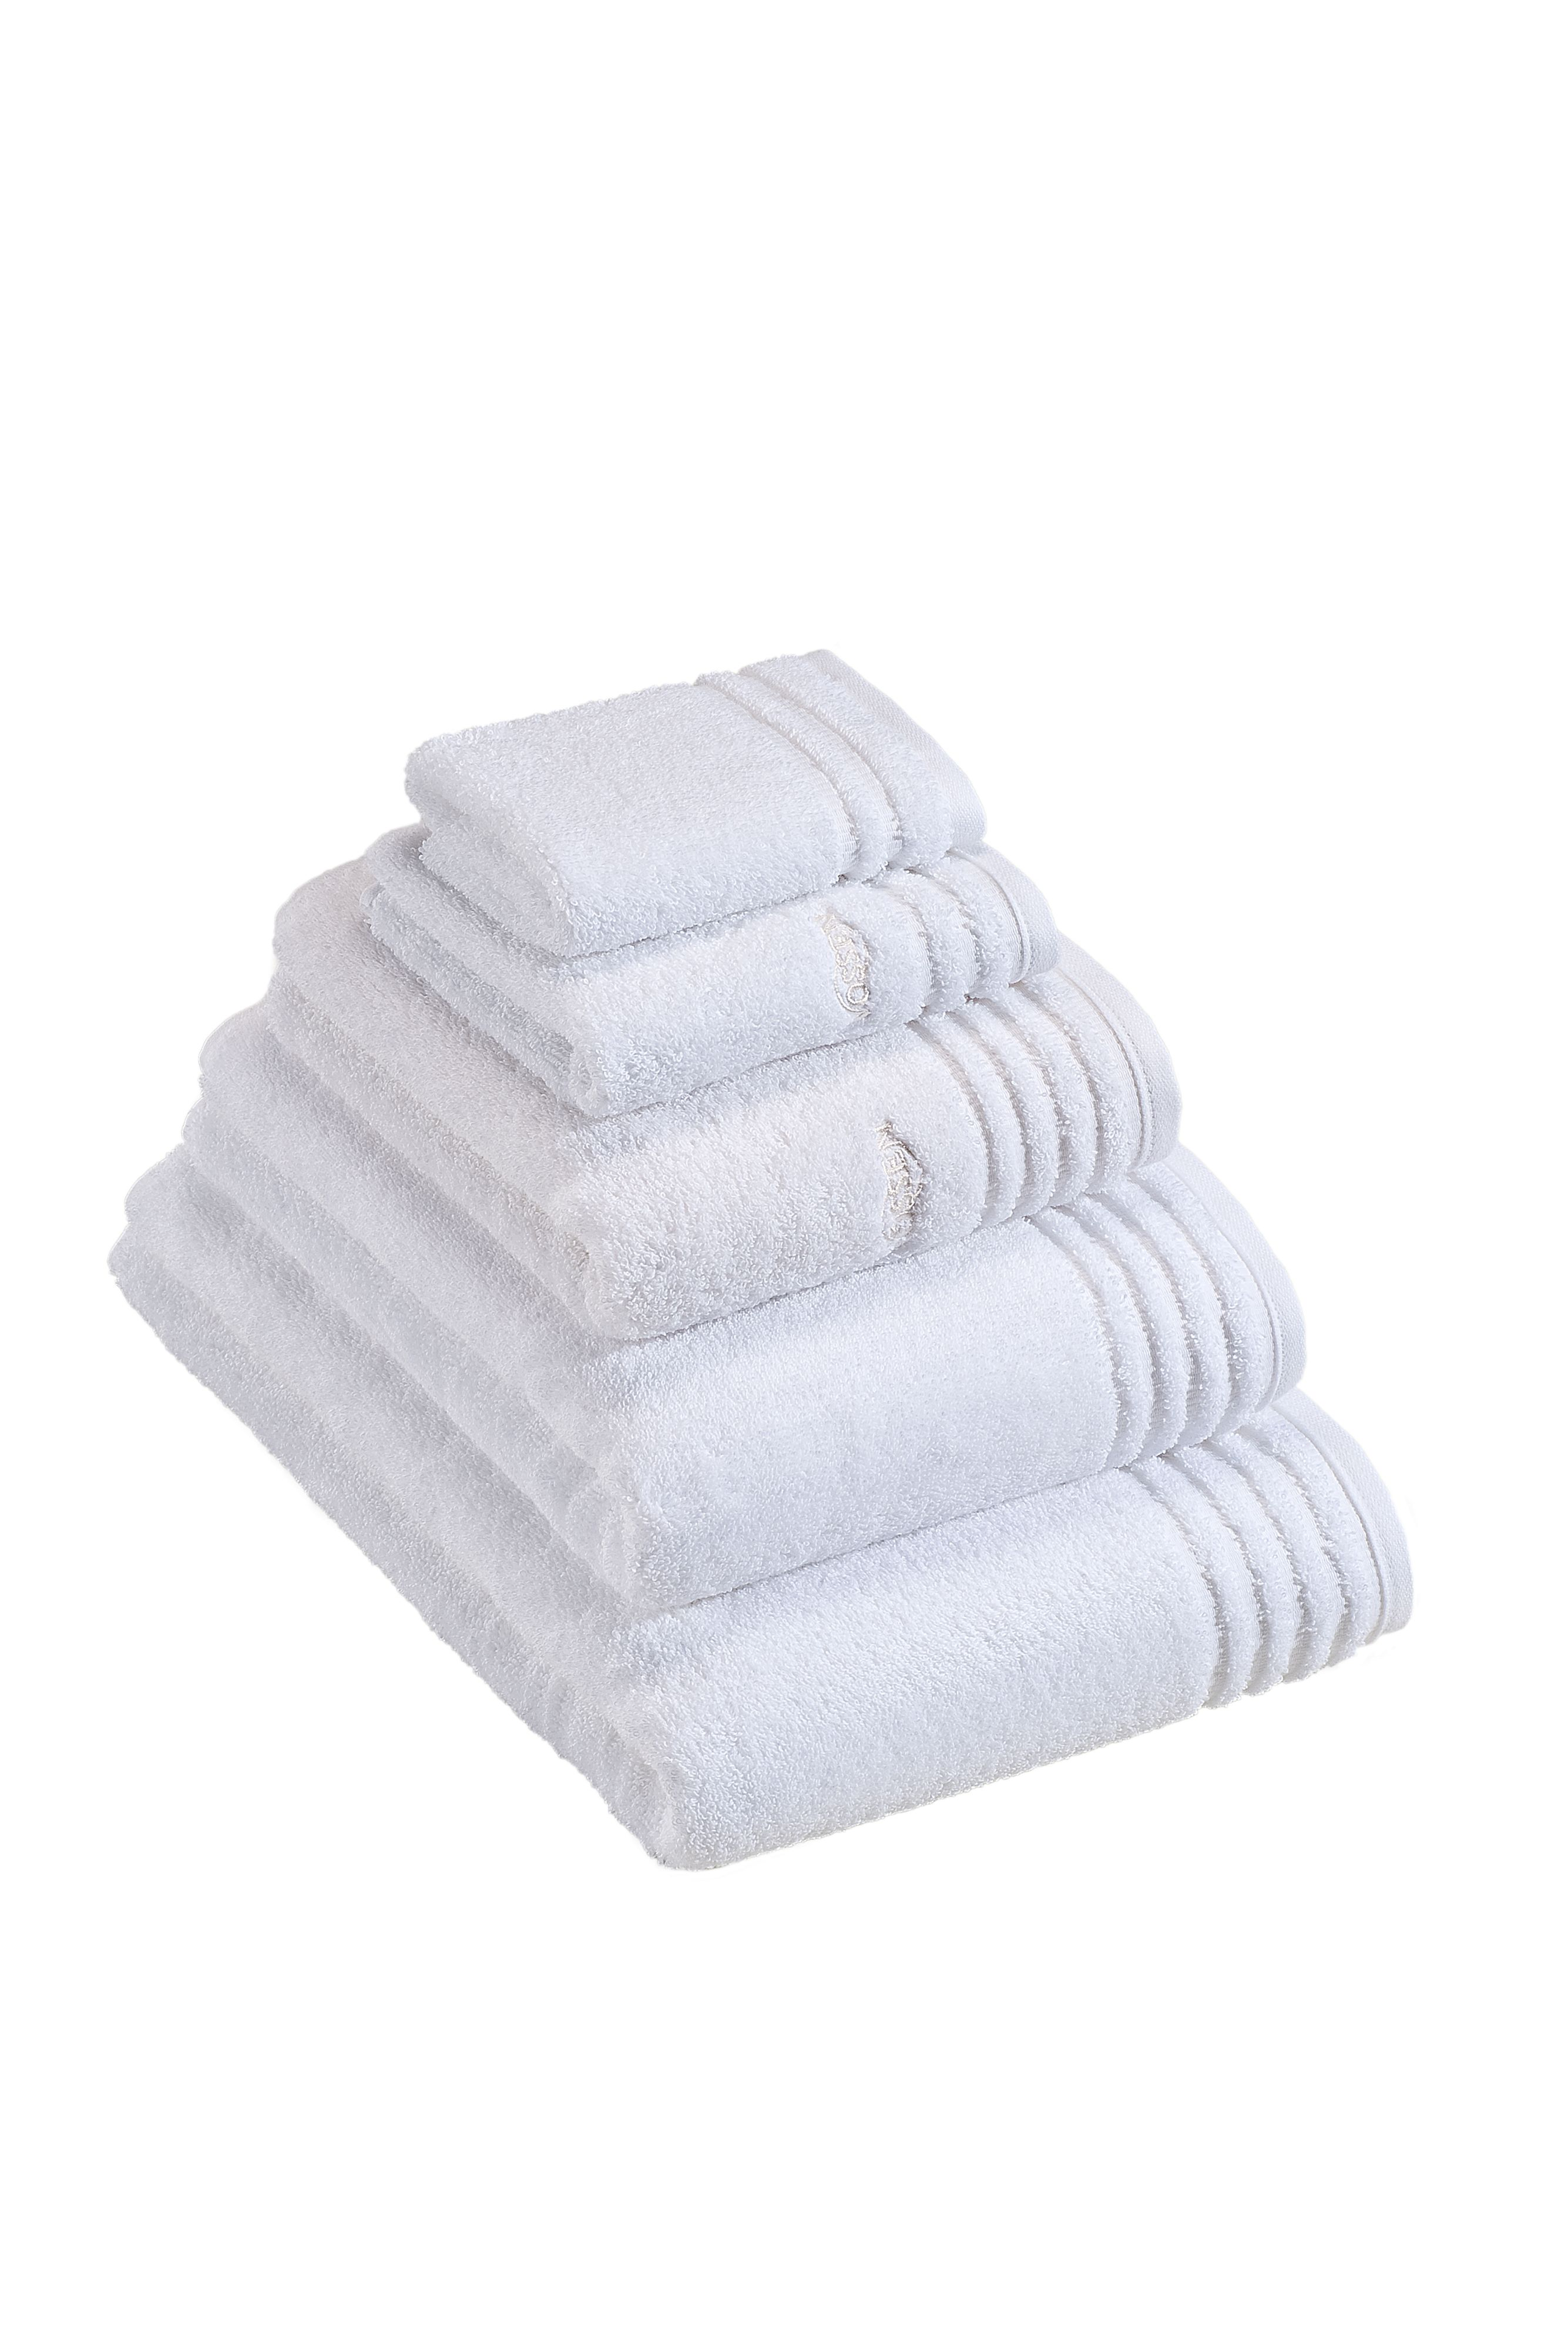 Vienna towel range in white